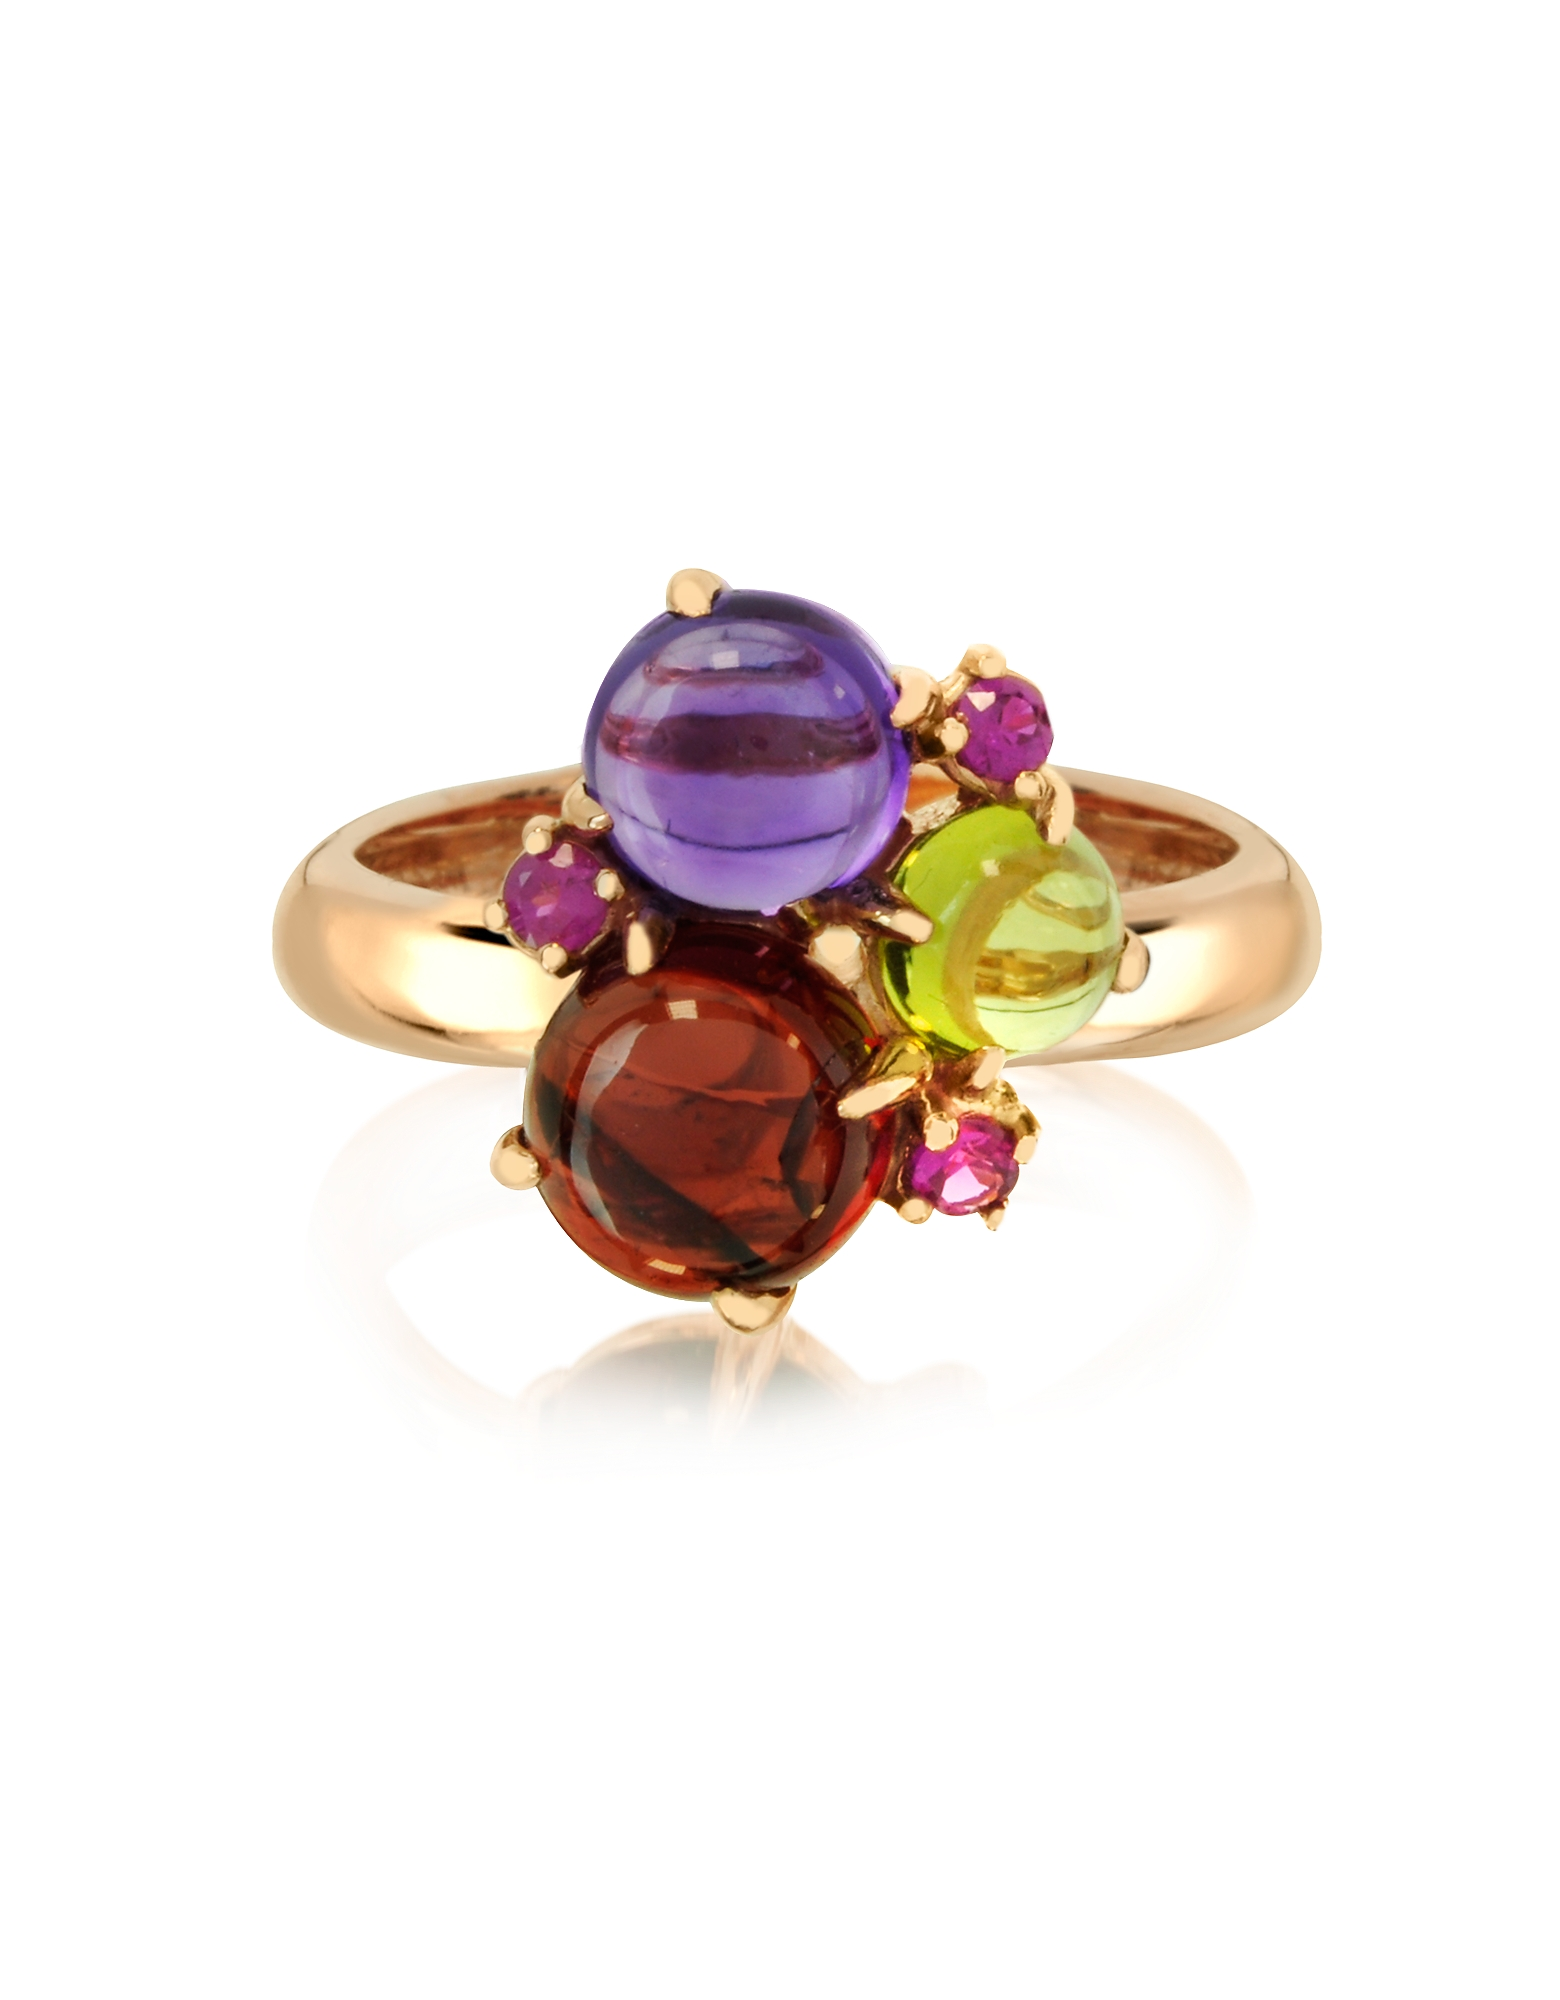 Mia & Beverly Rings, Gemstones 18K Rose Gold Ring